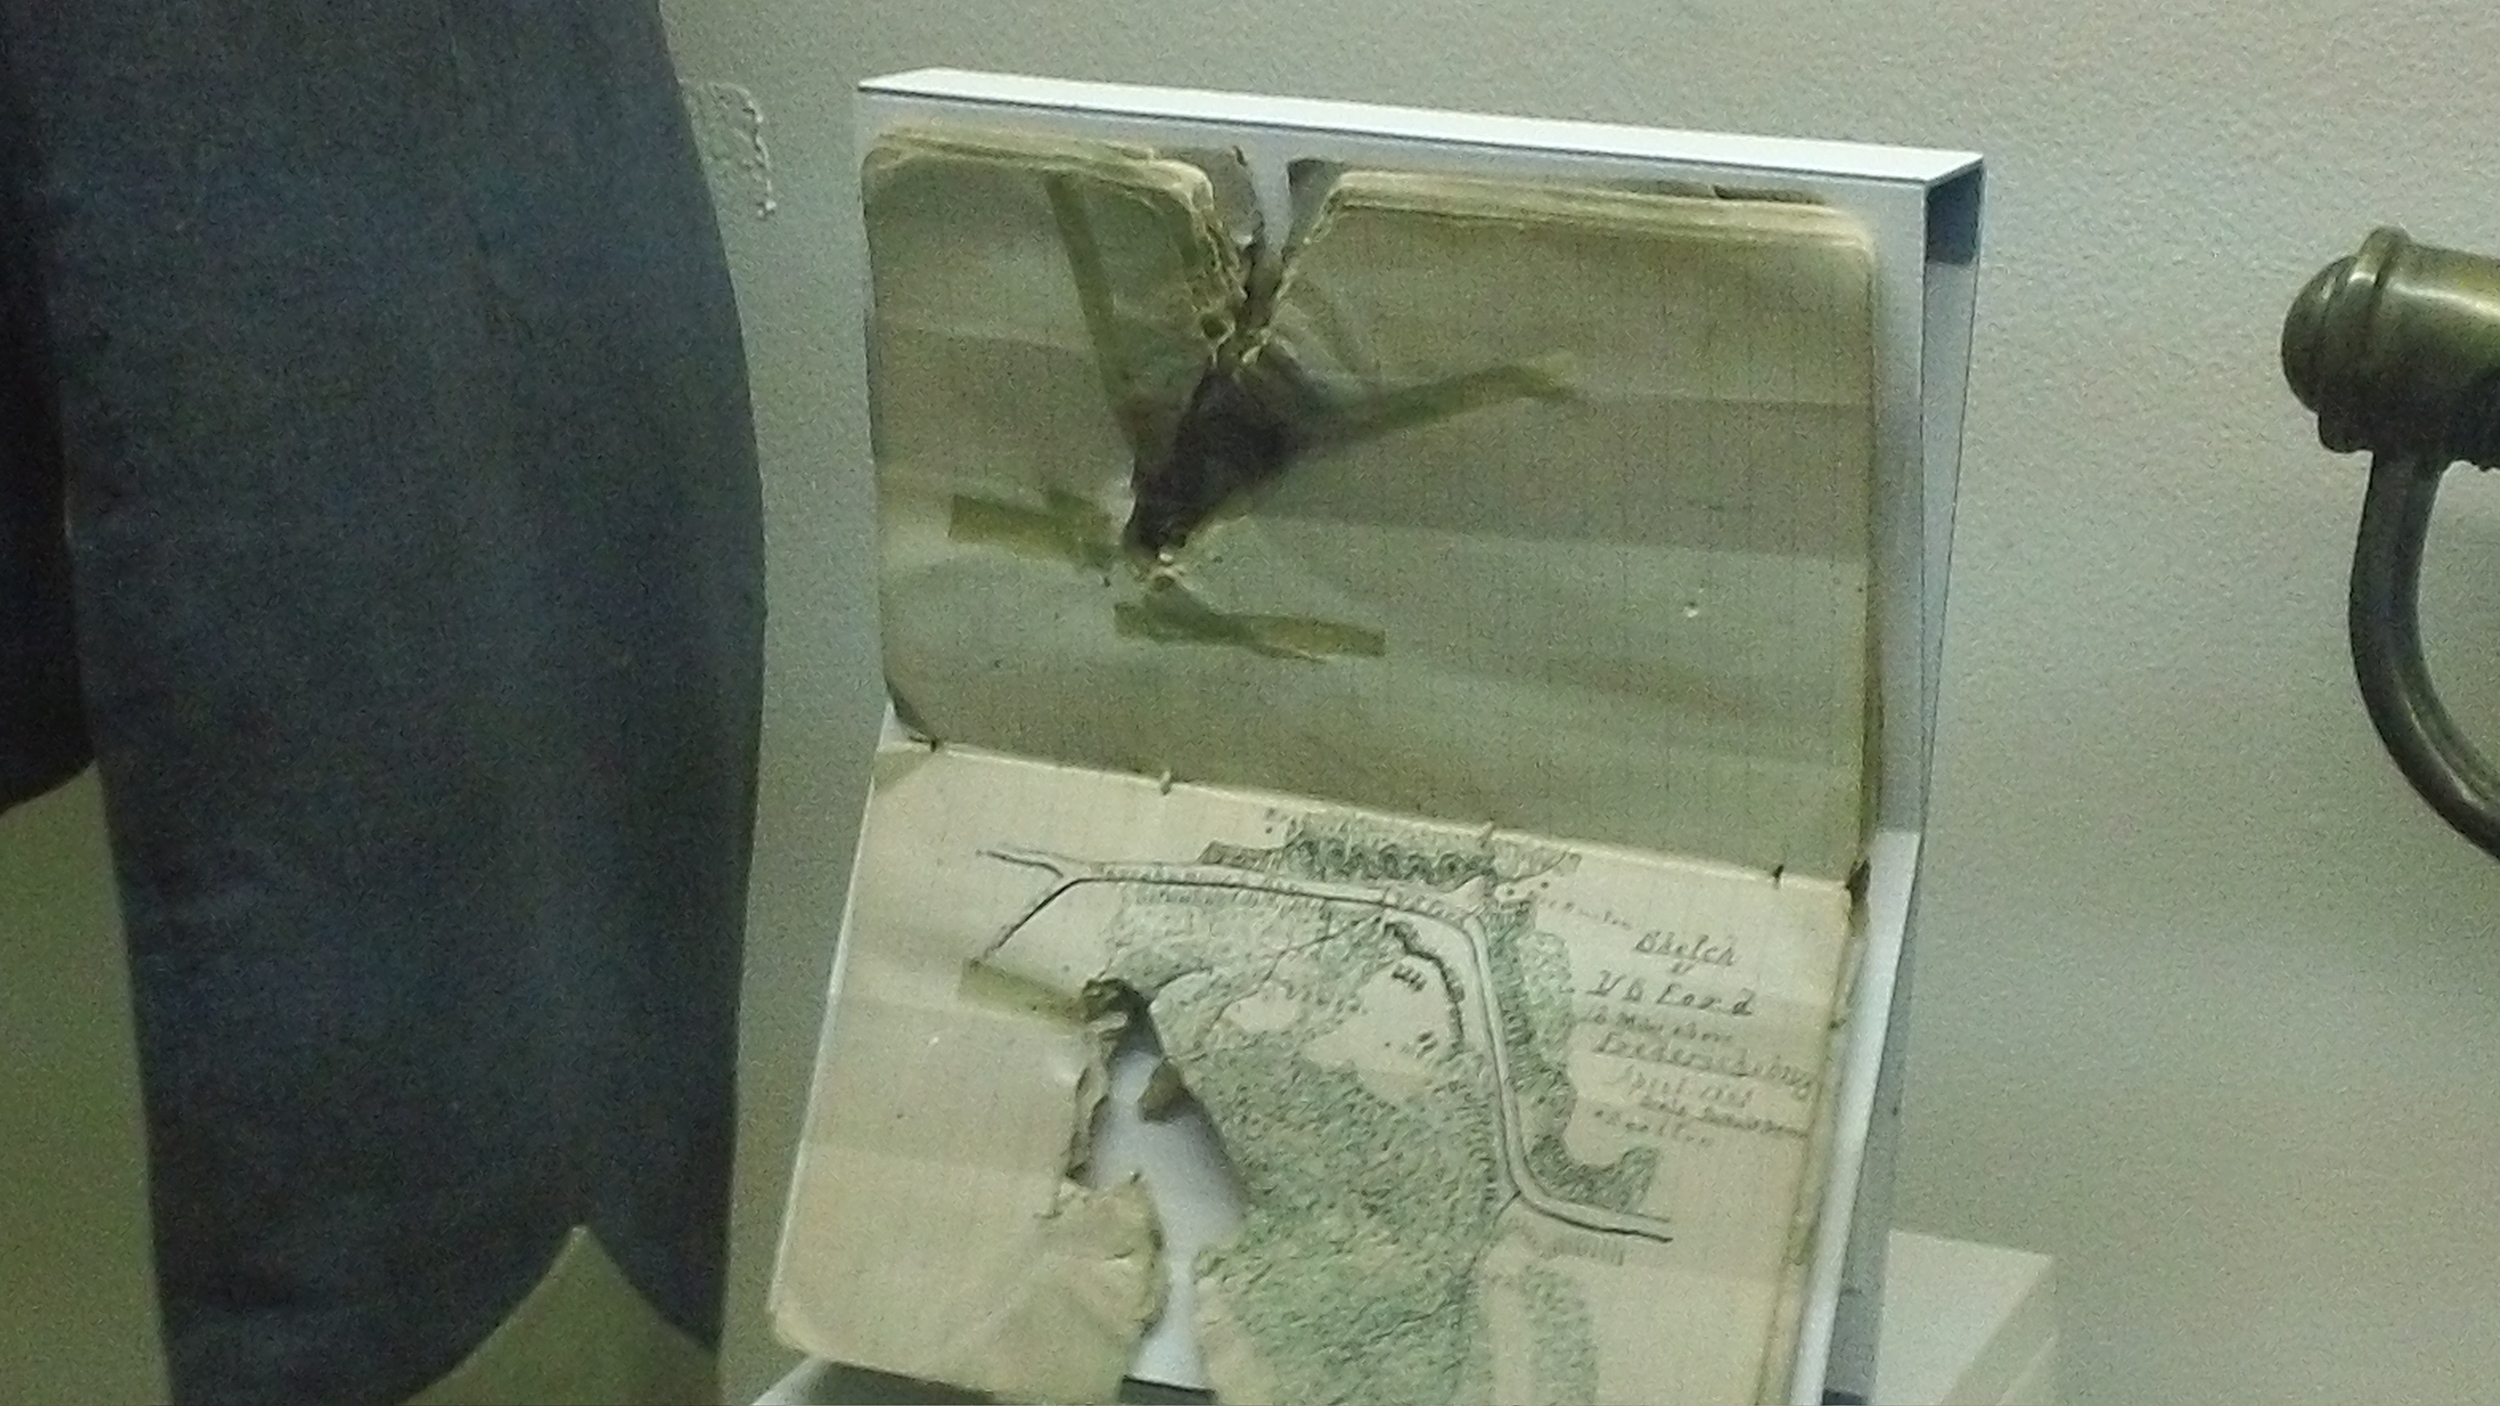 The field notebook of James Boswell, pierced by a bullet. A member of Stonewall Jackson's staff, Boswell was killed in the same confused flurry of friendly fire which also hit Stonewall.